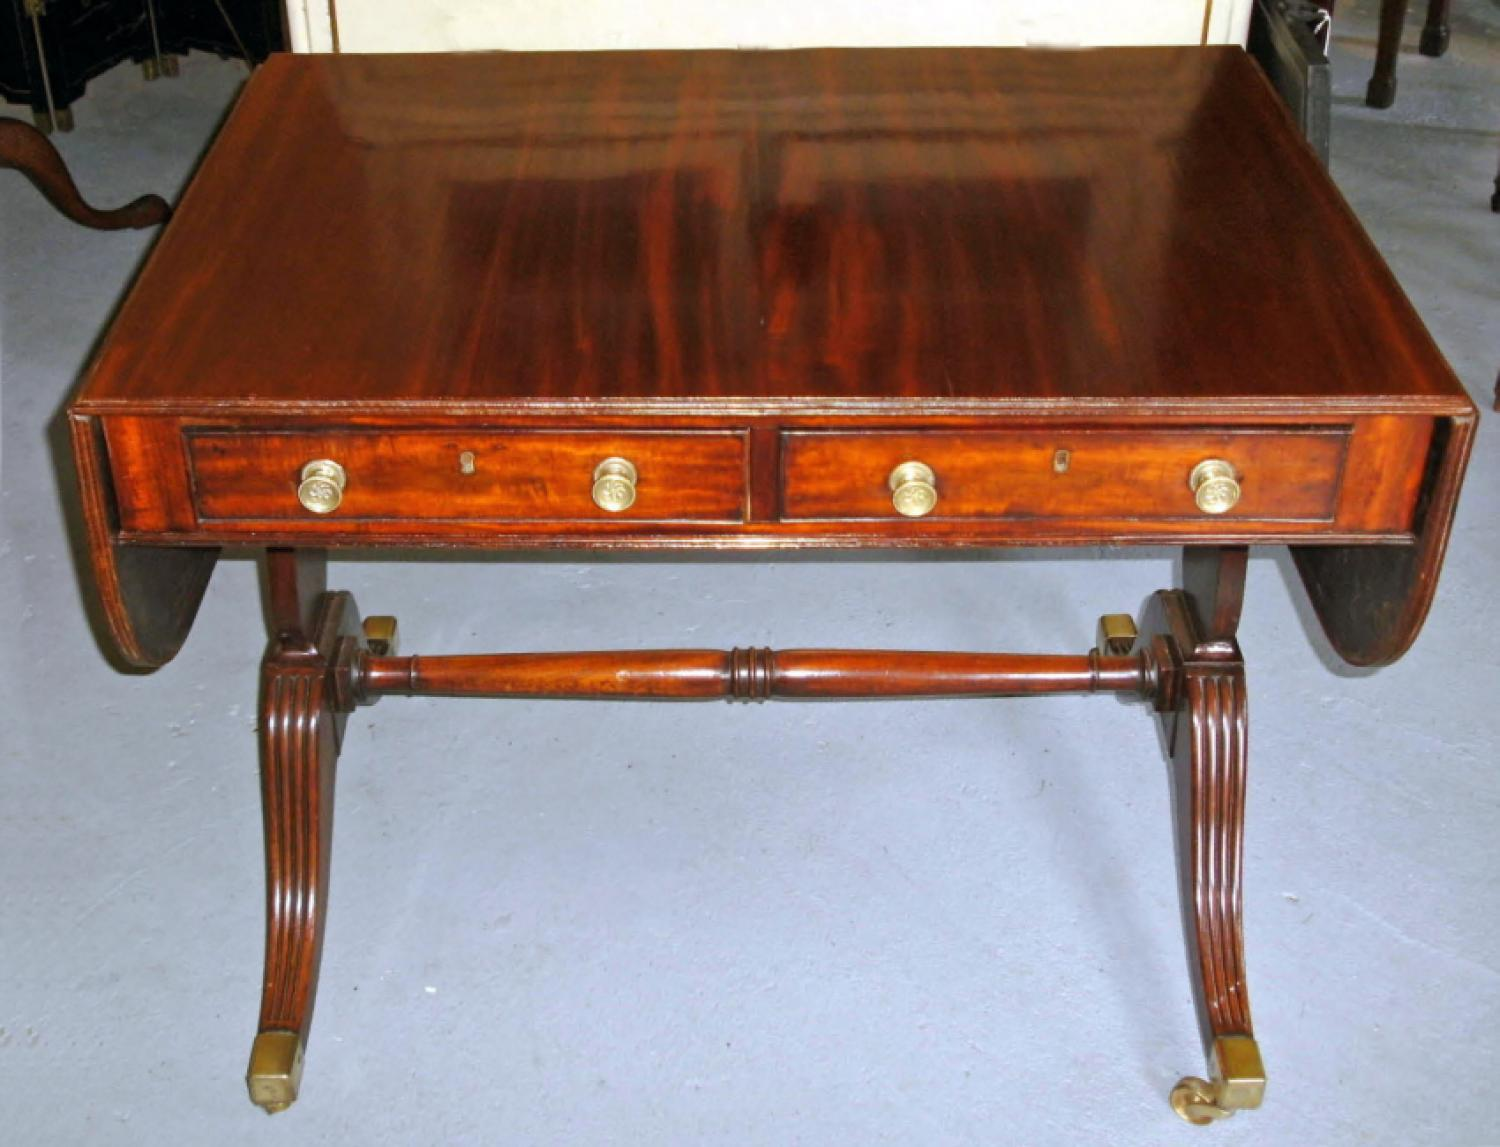 English george iv style figured mahogany sofa table or desk c1840 watchthetrailerfo